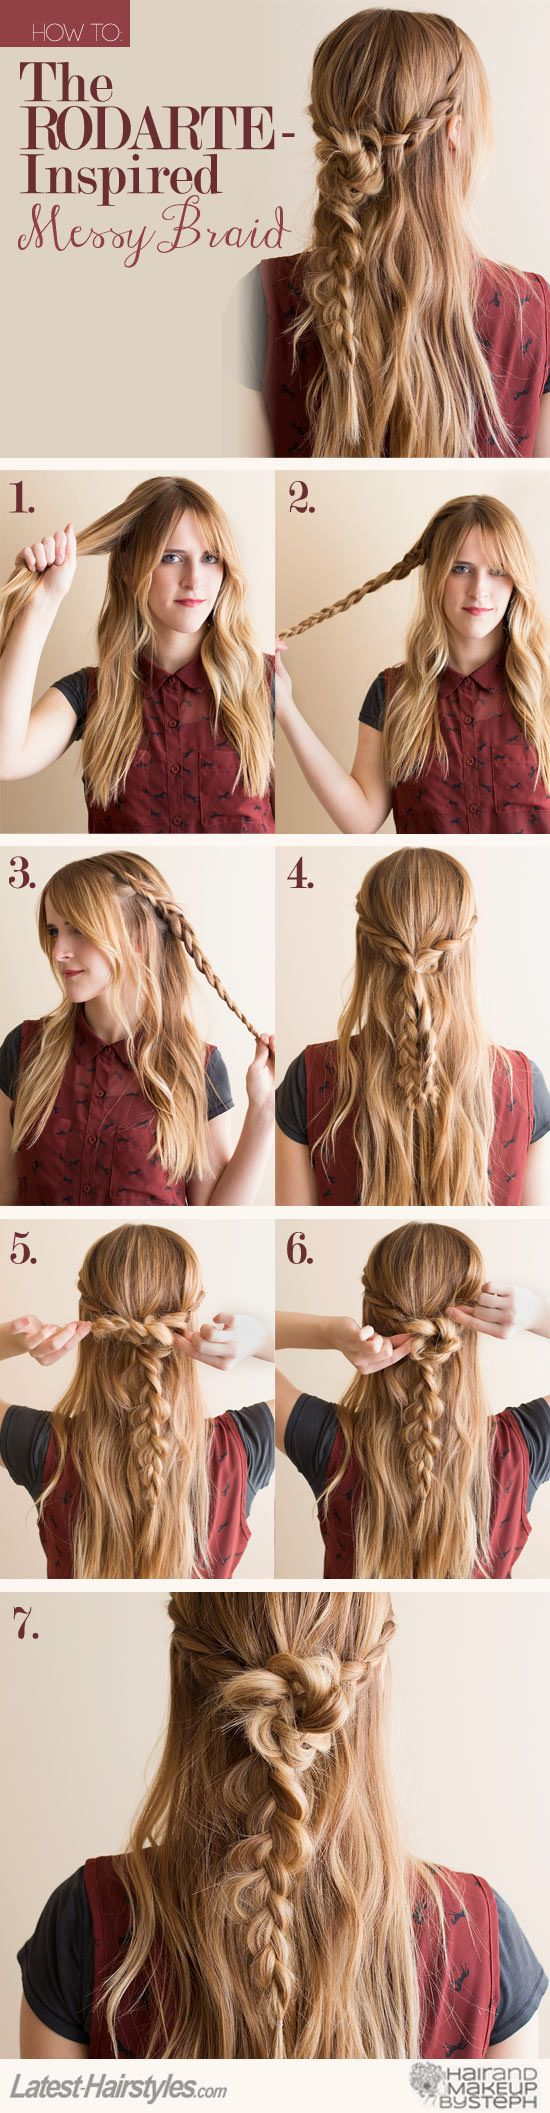 We heart this runway-worthy braid tutorial! Click through for full steps and tips...